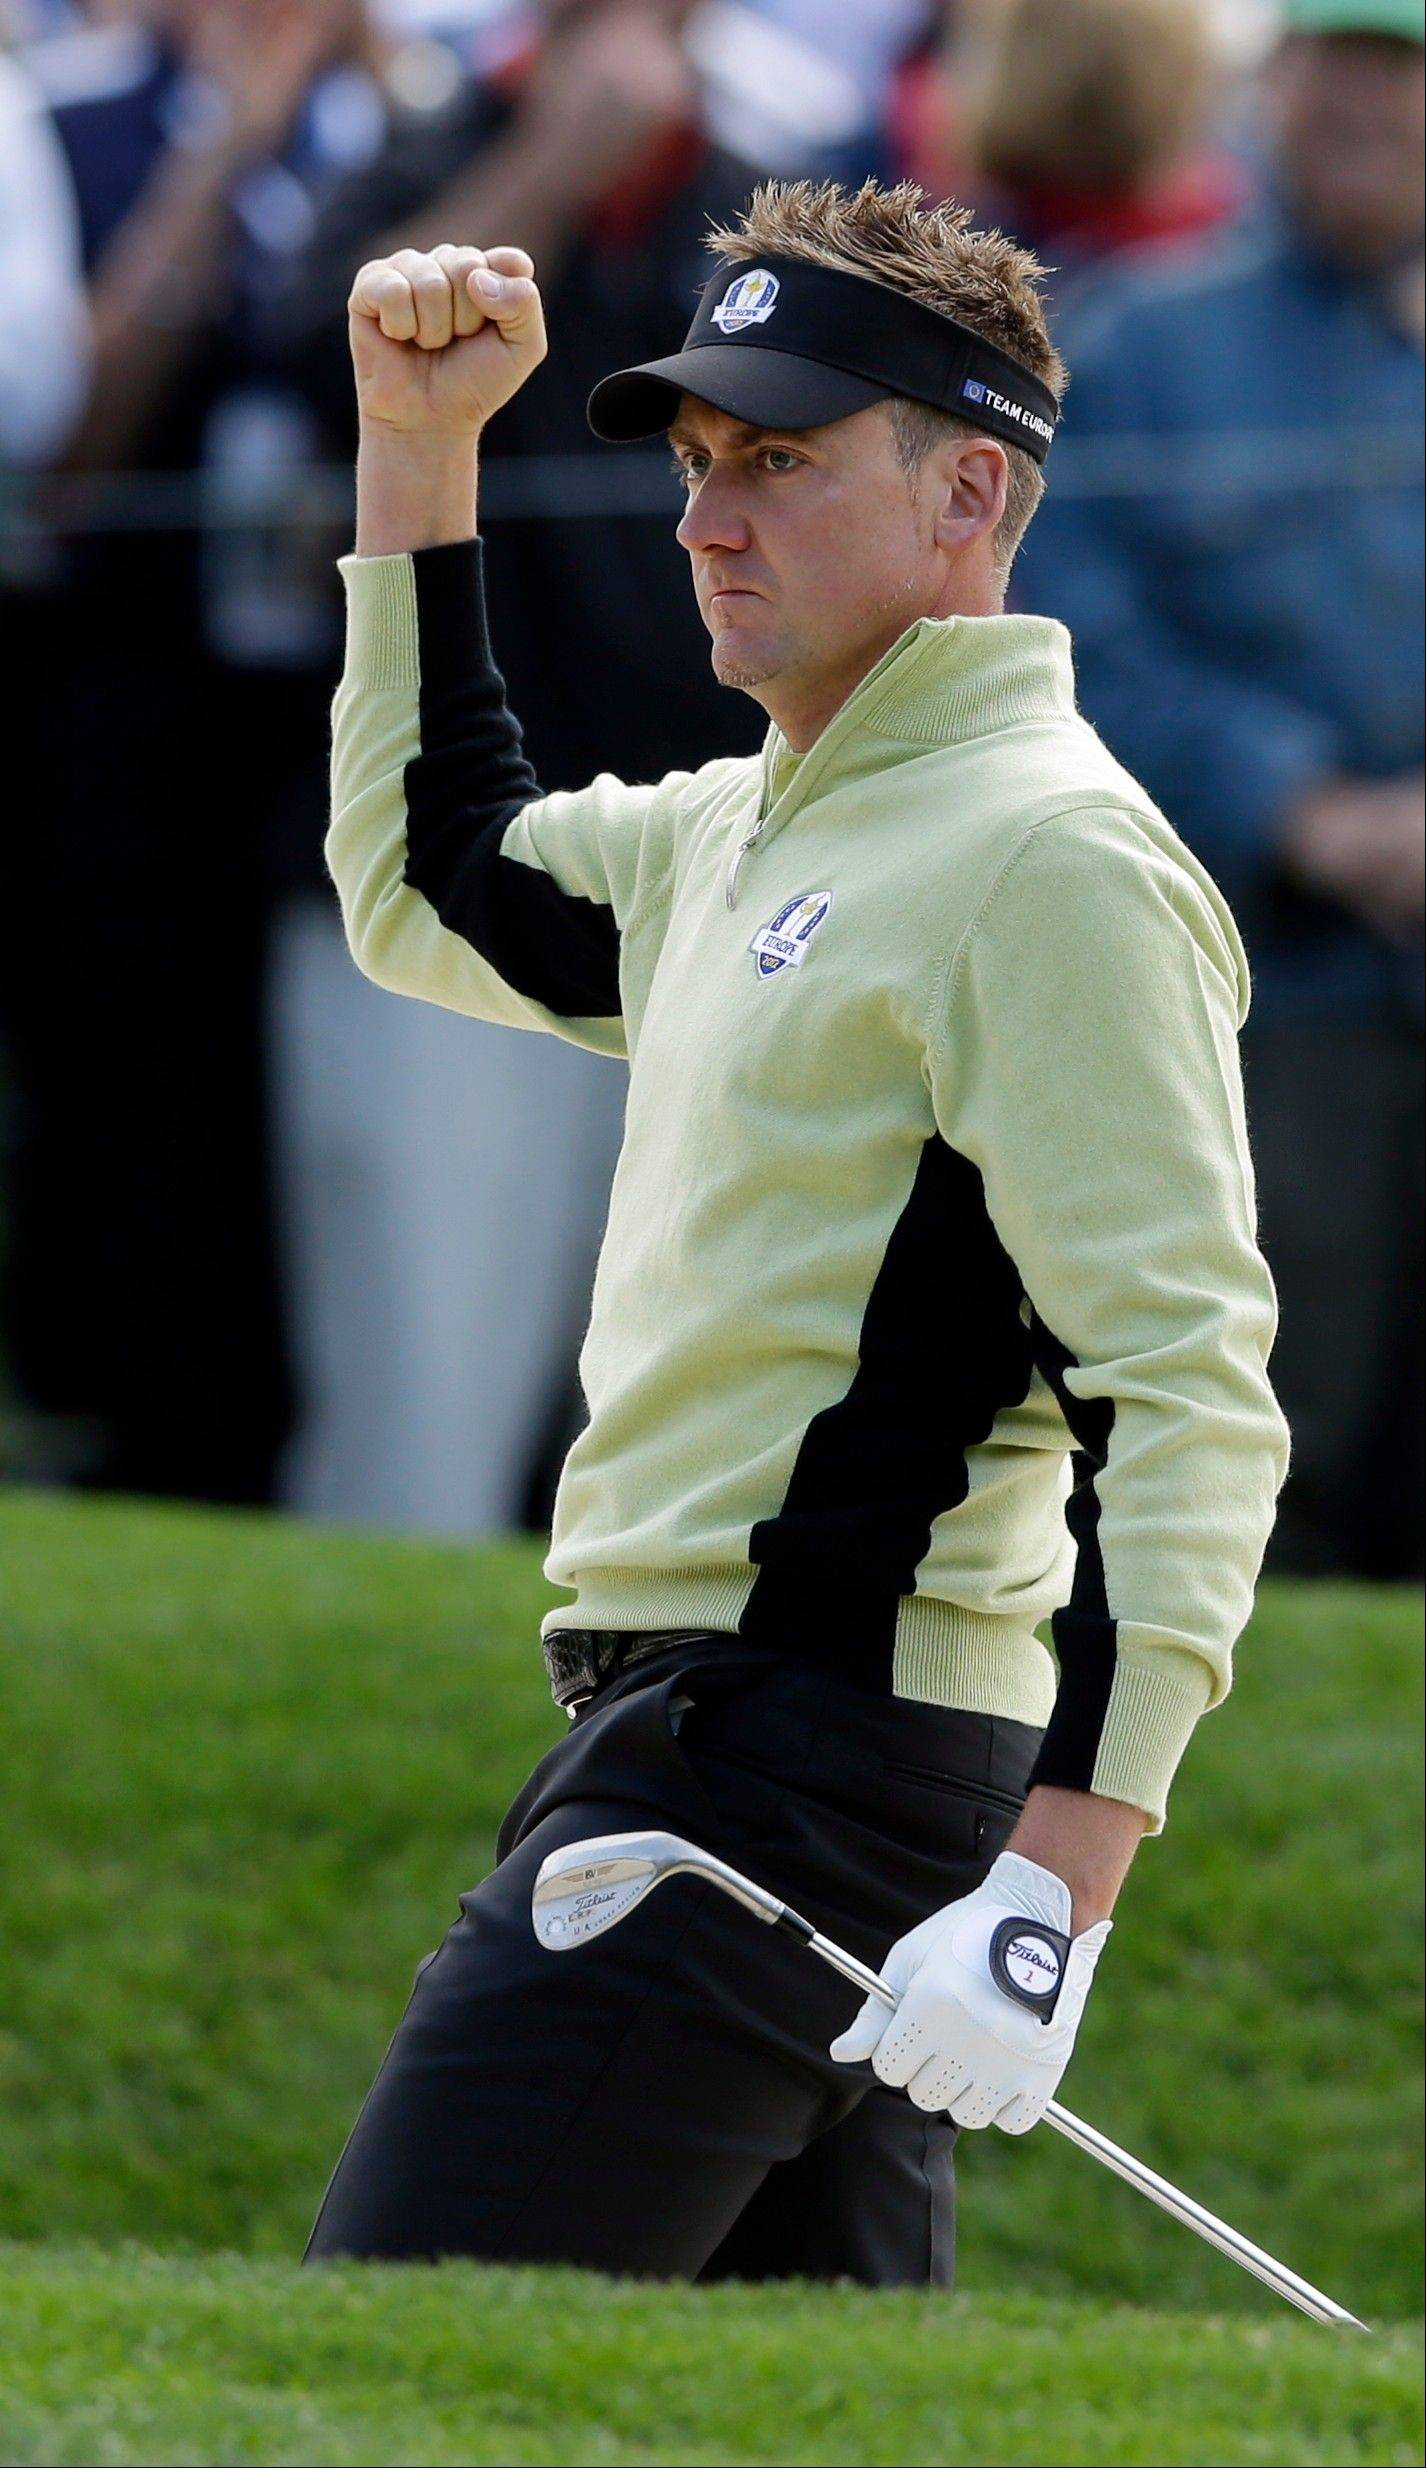 Europe's Ian Poulter reacts after chipping in for a birdie on the 11th hole during a foursomes match at the Ryder Cup PGA golf tournament Friday at Medinah Country Club.